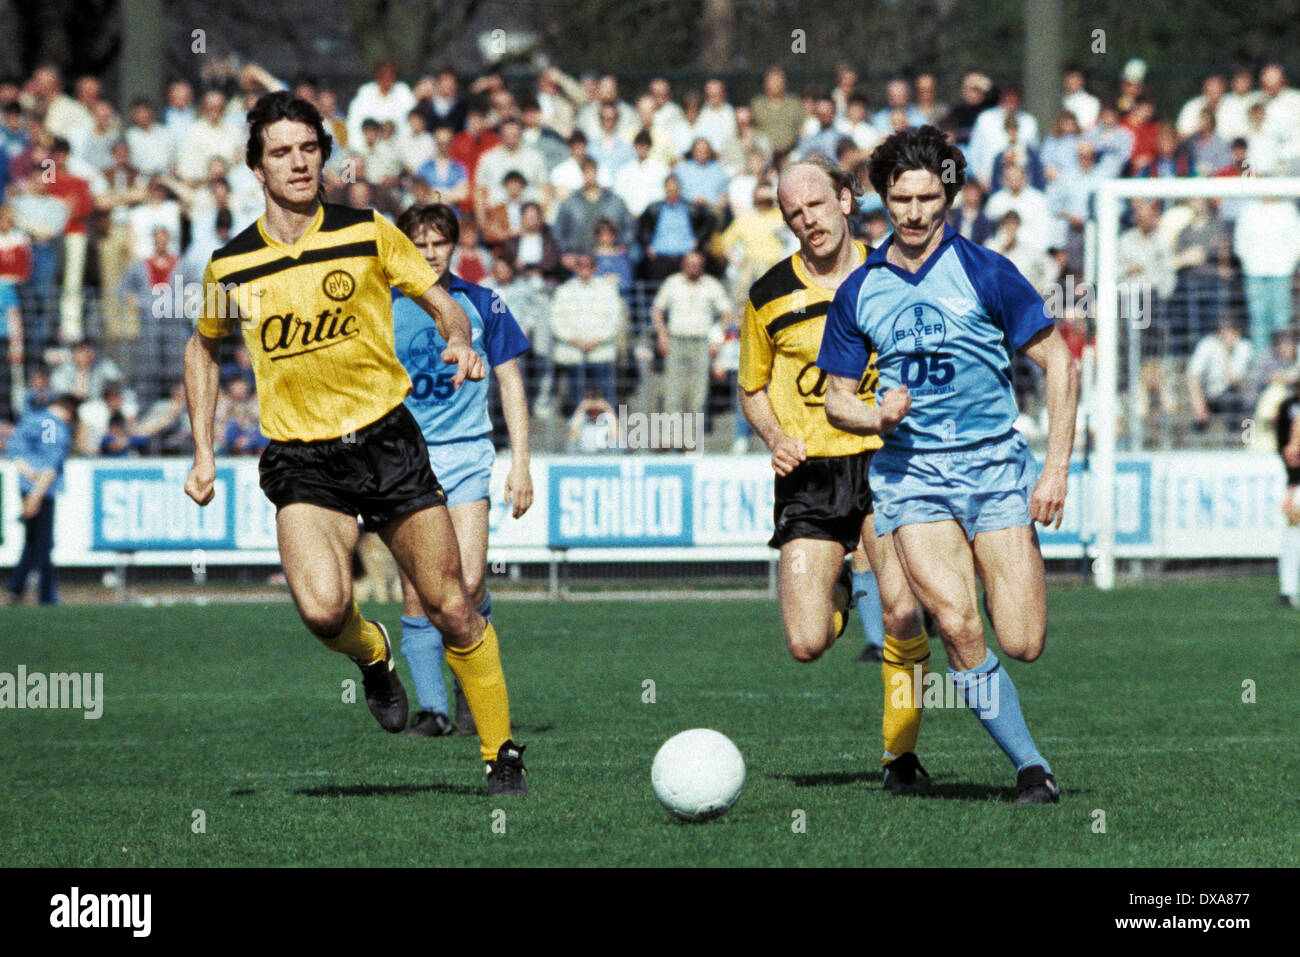 football, Bundesliga, 1983/1984, Grotenburg Stadium, FC Bayer 05 Uerdingen versus Borussia Dortmund 2:1, scene of the match, f.l.t.r. Bernd Klotz (BVB), Wayne Thomas (Bayer), Ulrich Bittcher (BVB), Norbert Hofmann (Bayer) - Stock Image